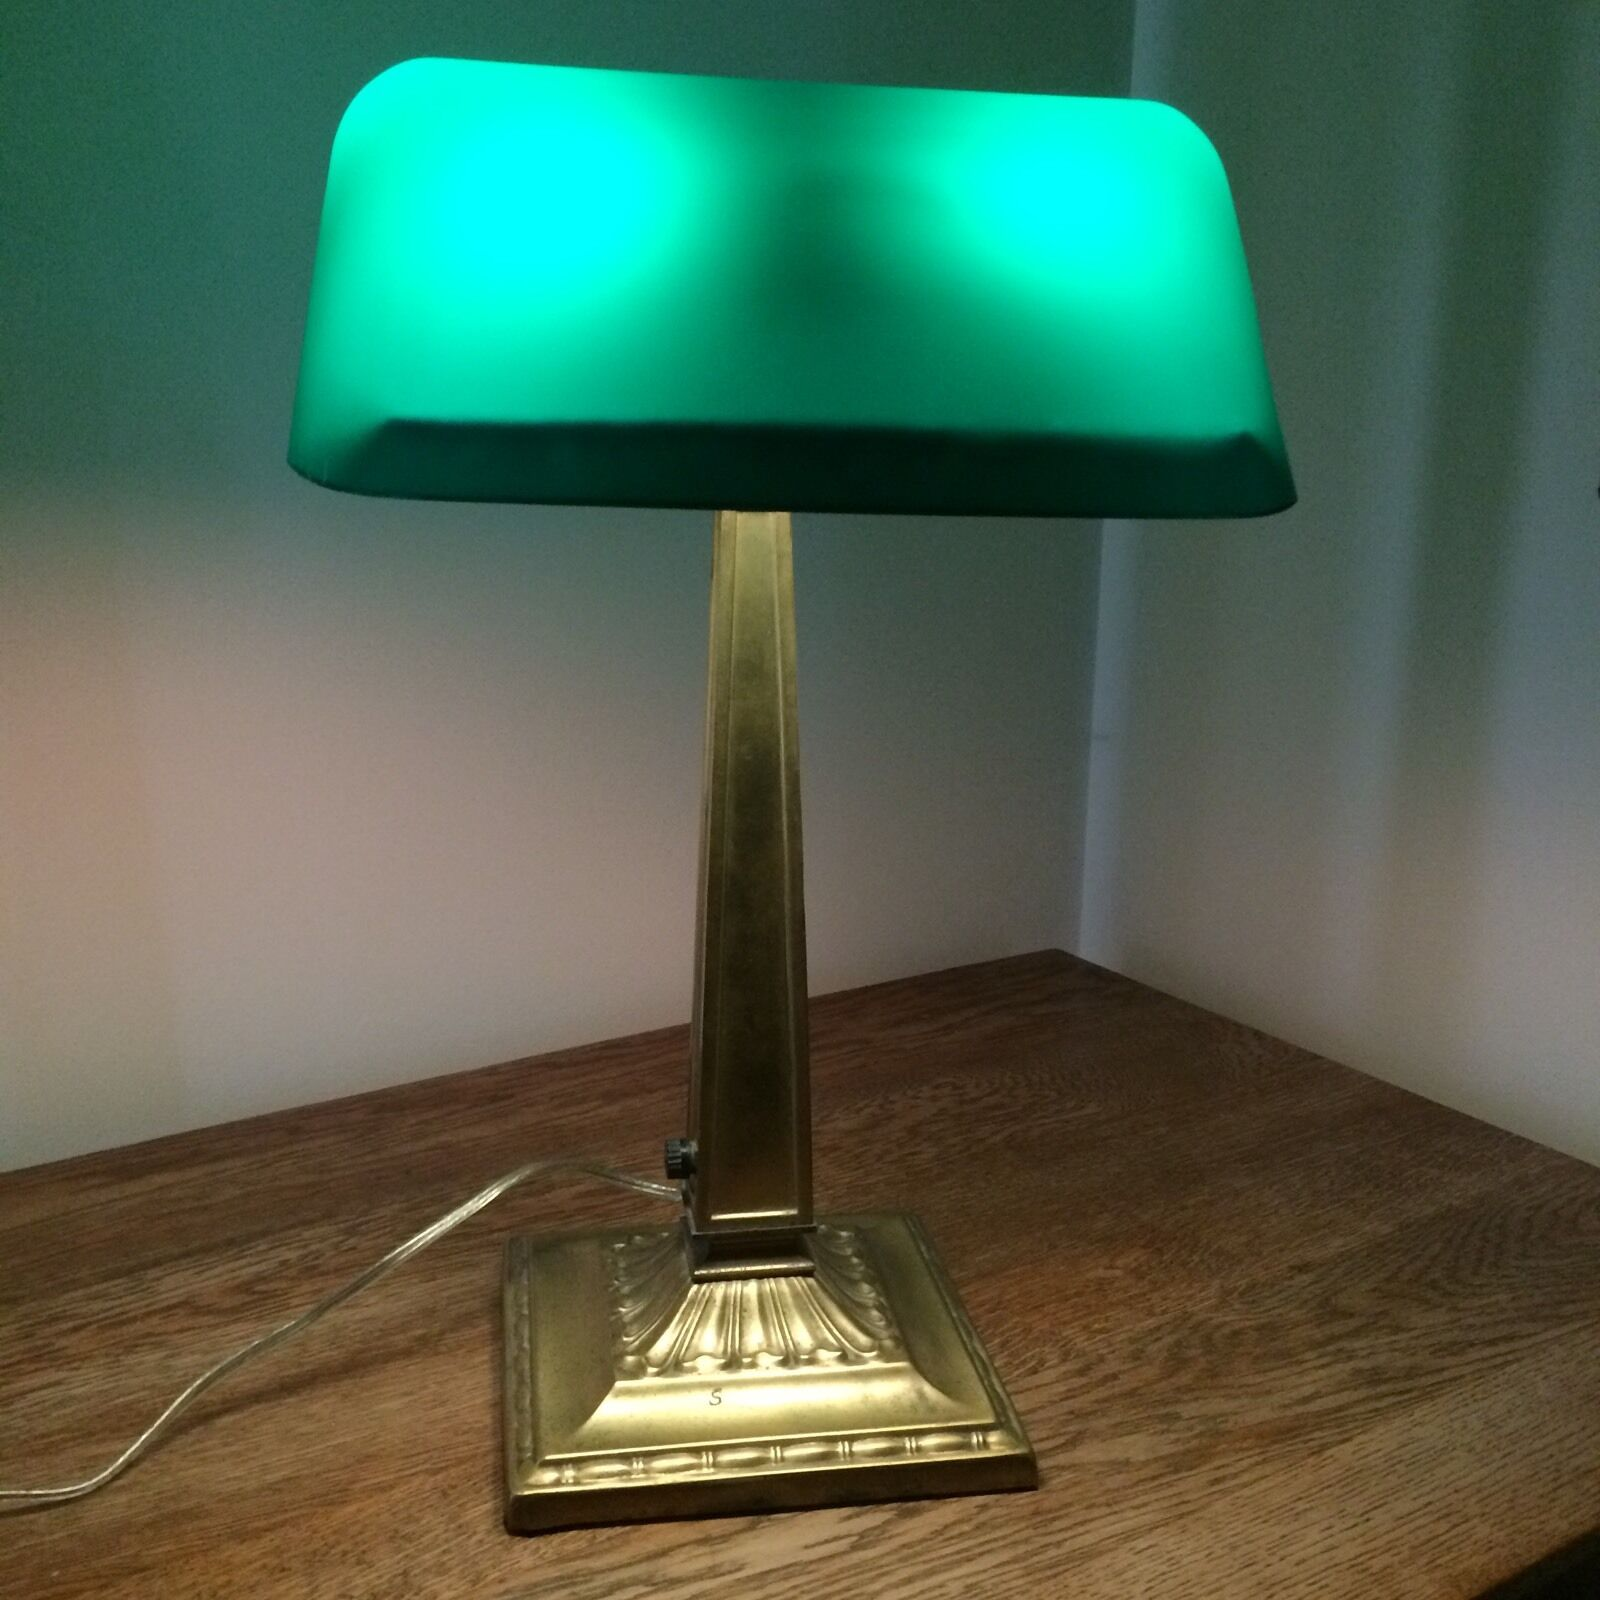 Vintage bankers desk lamp - Emeralite Vintage Bankers Desk Lamp 119 00 Emeralite Vintage Bankers Desk Lamp 119 00 1 Of 12